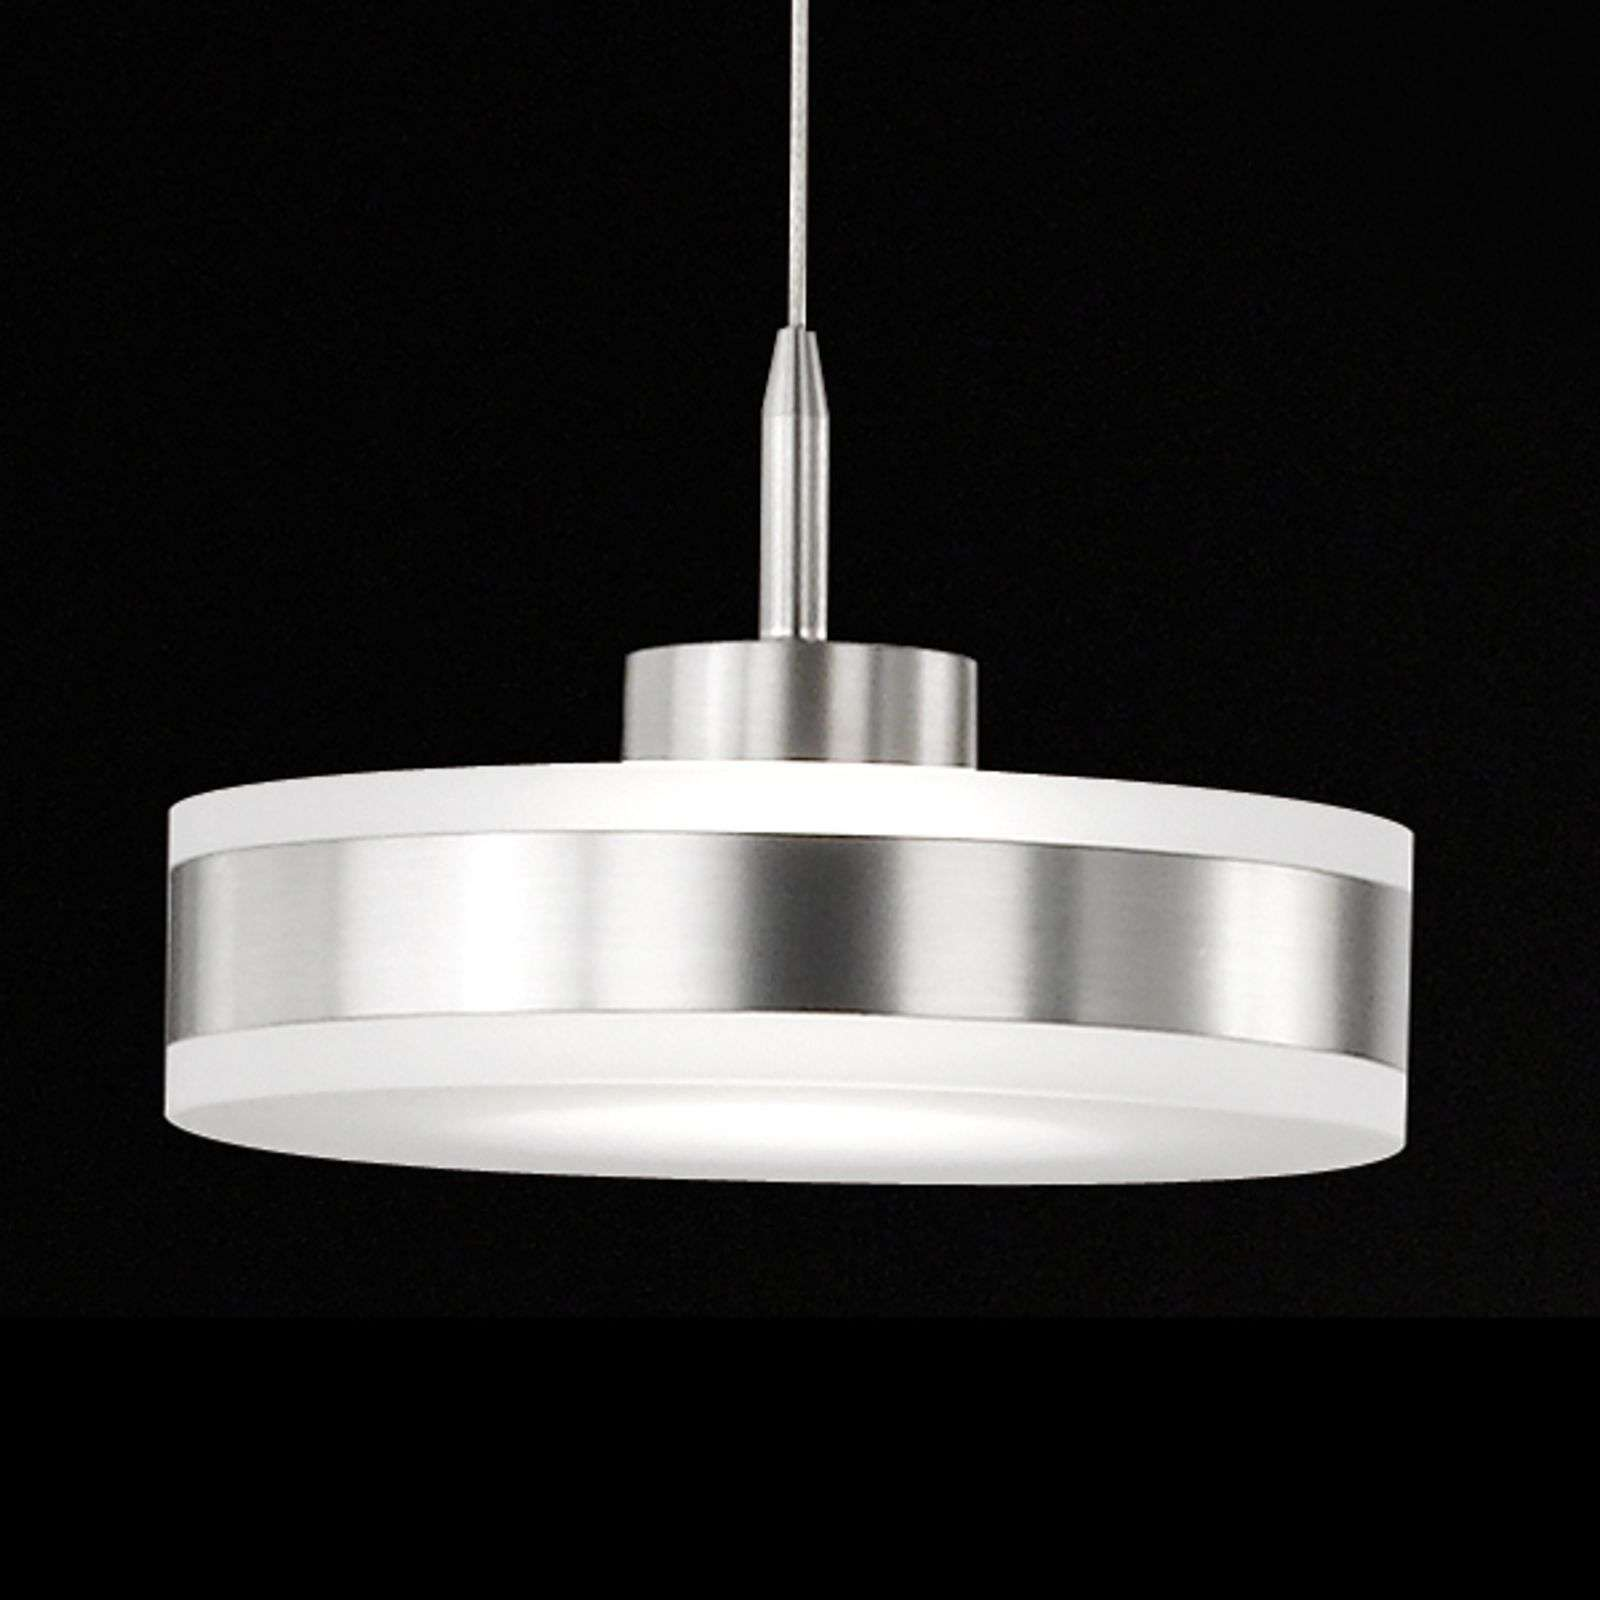 Suspension LED ronde Puk